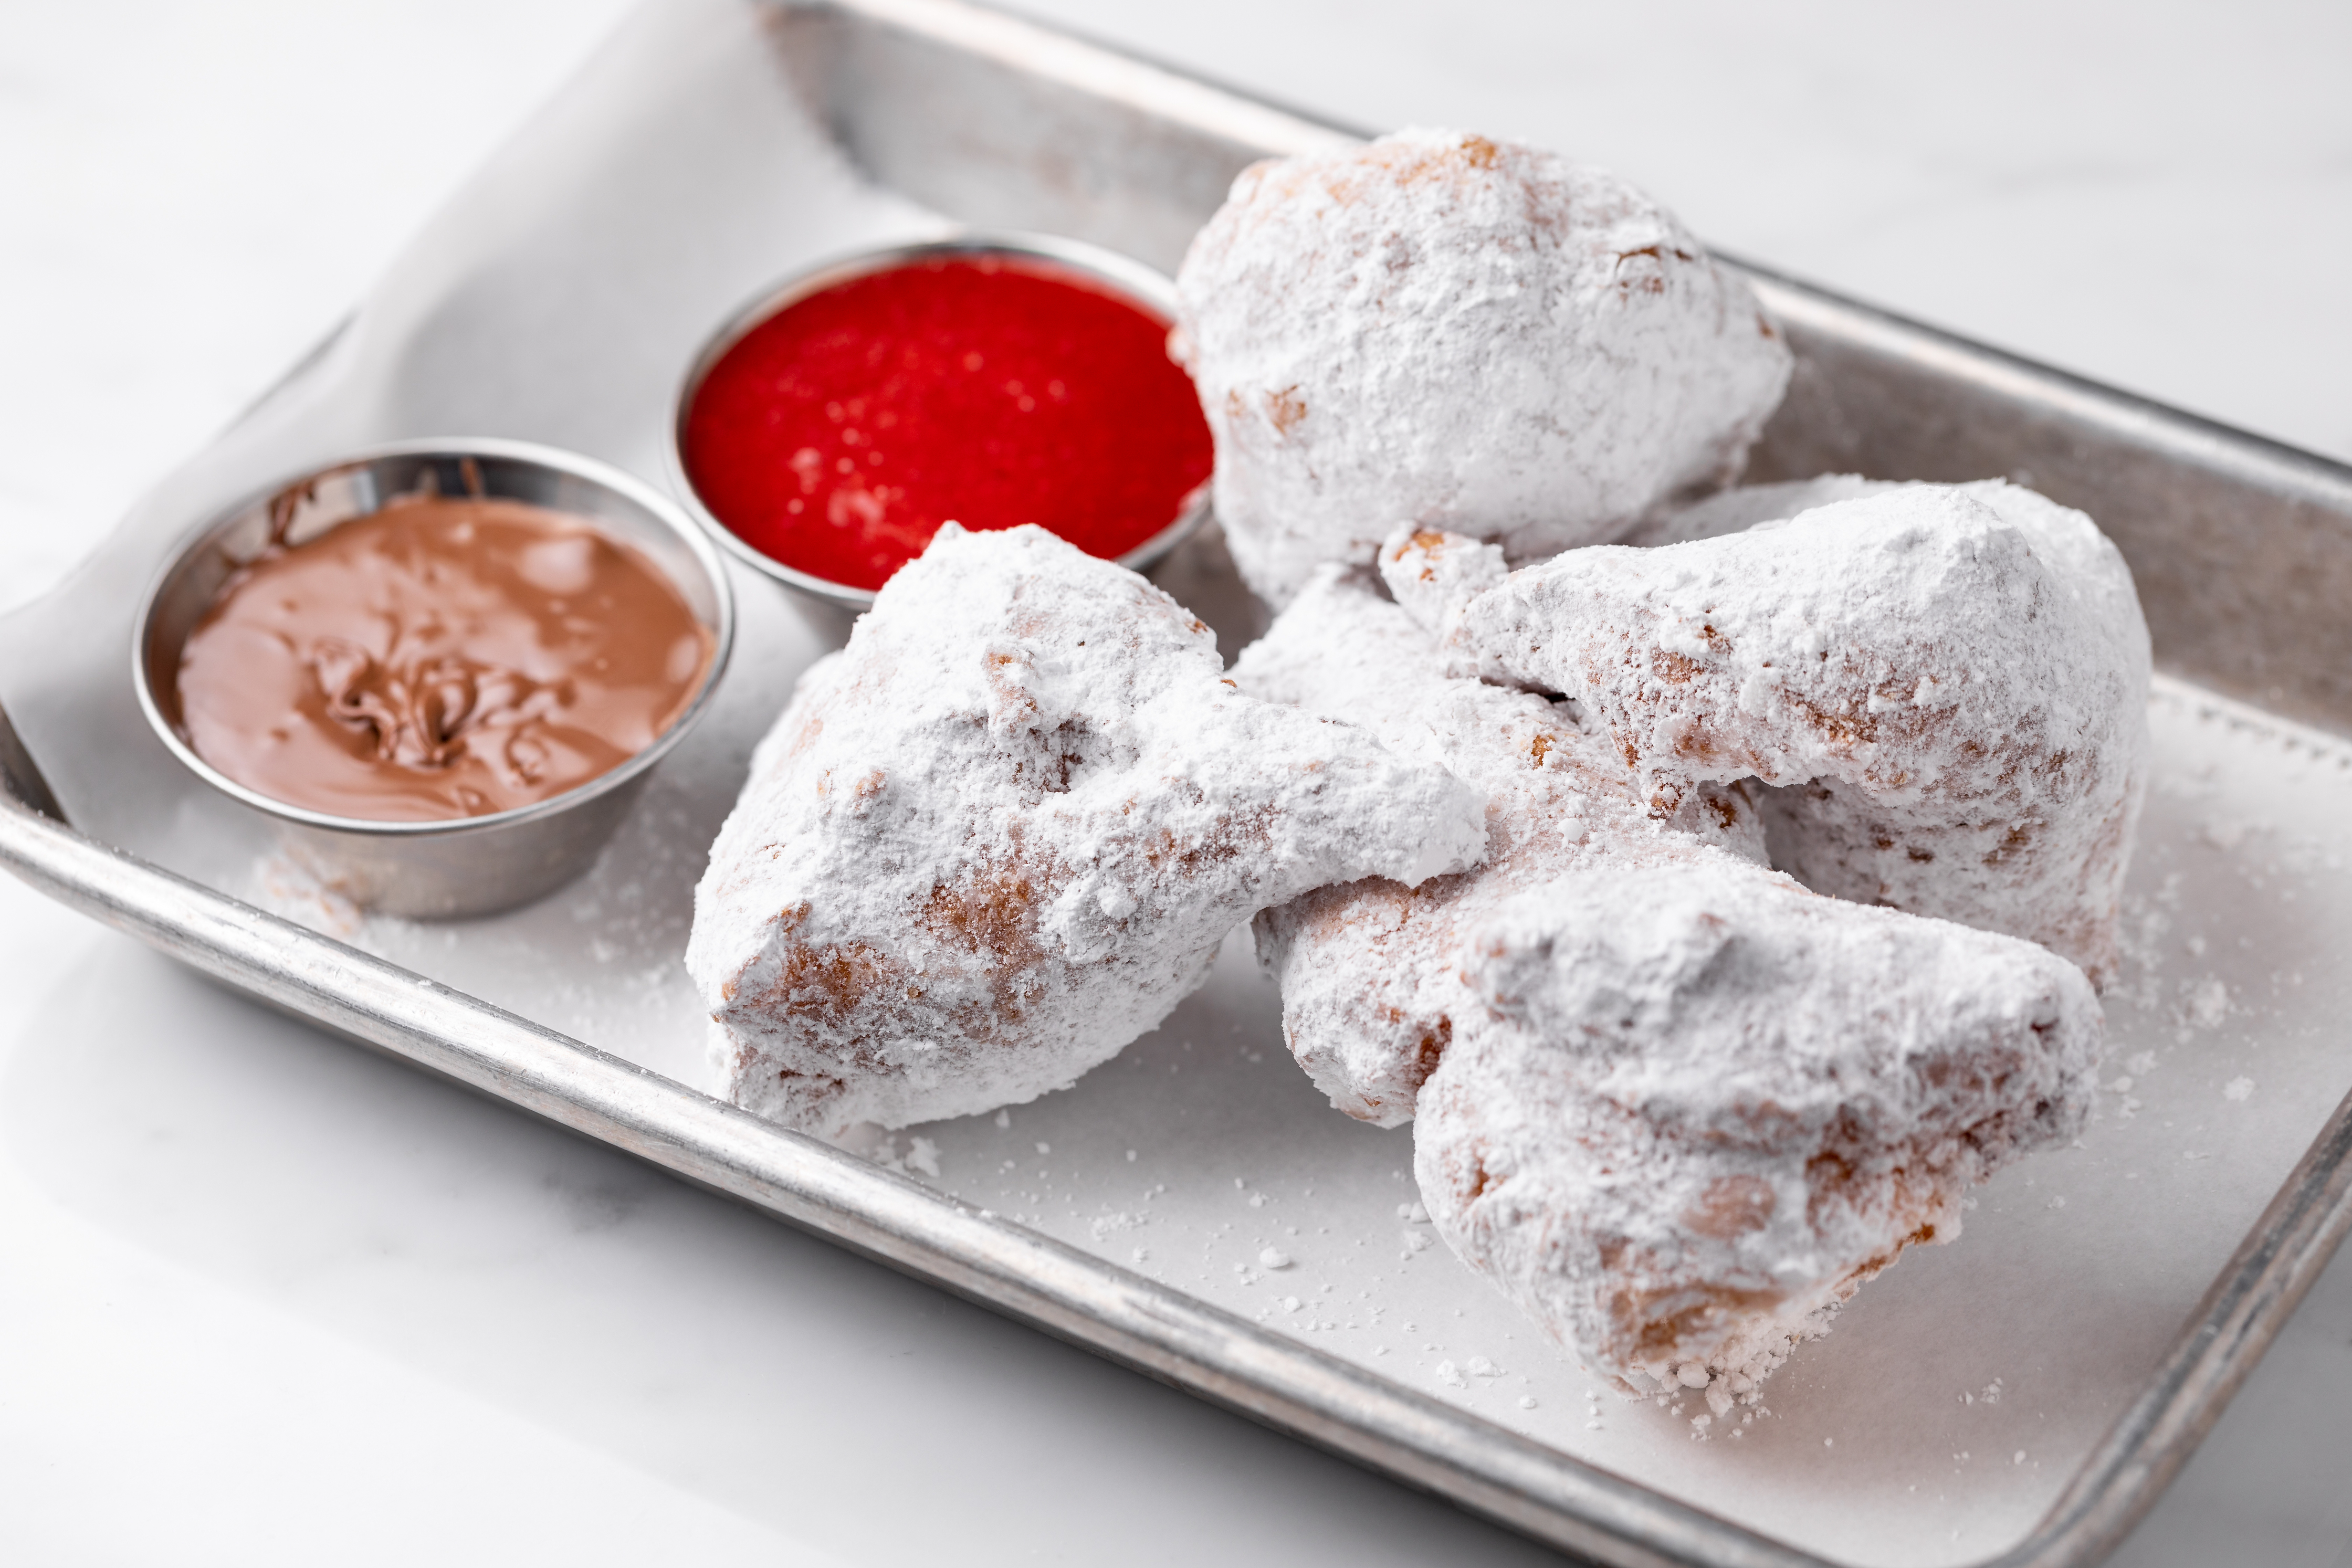 Hilltop Coffee + Kitchen's beignets with Nutella and berry dipping sauces in Eagle Rock, California